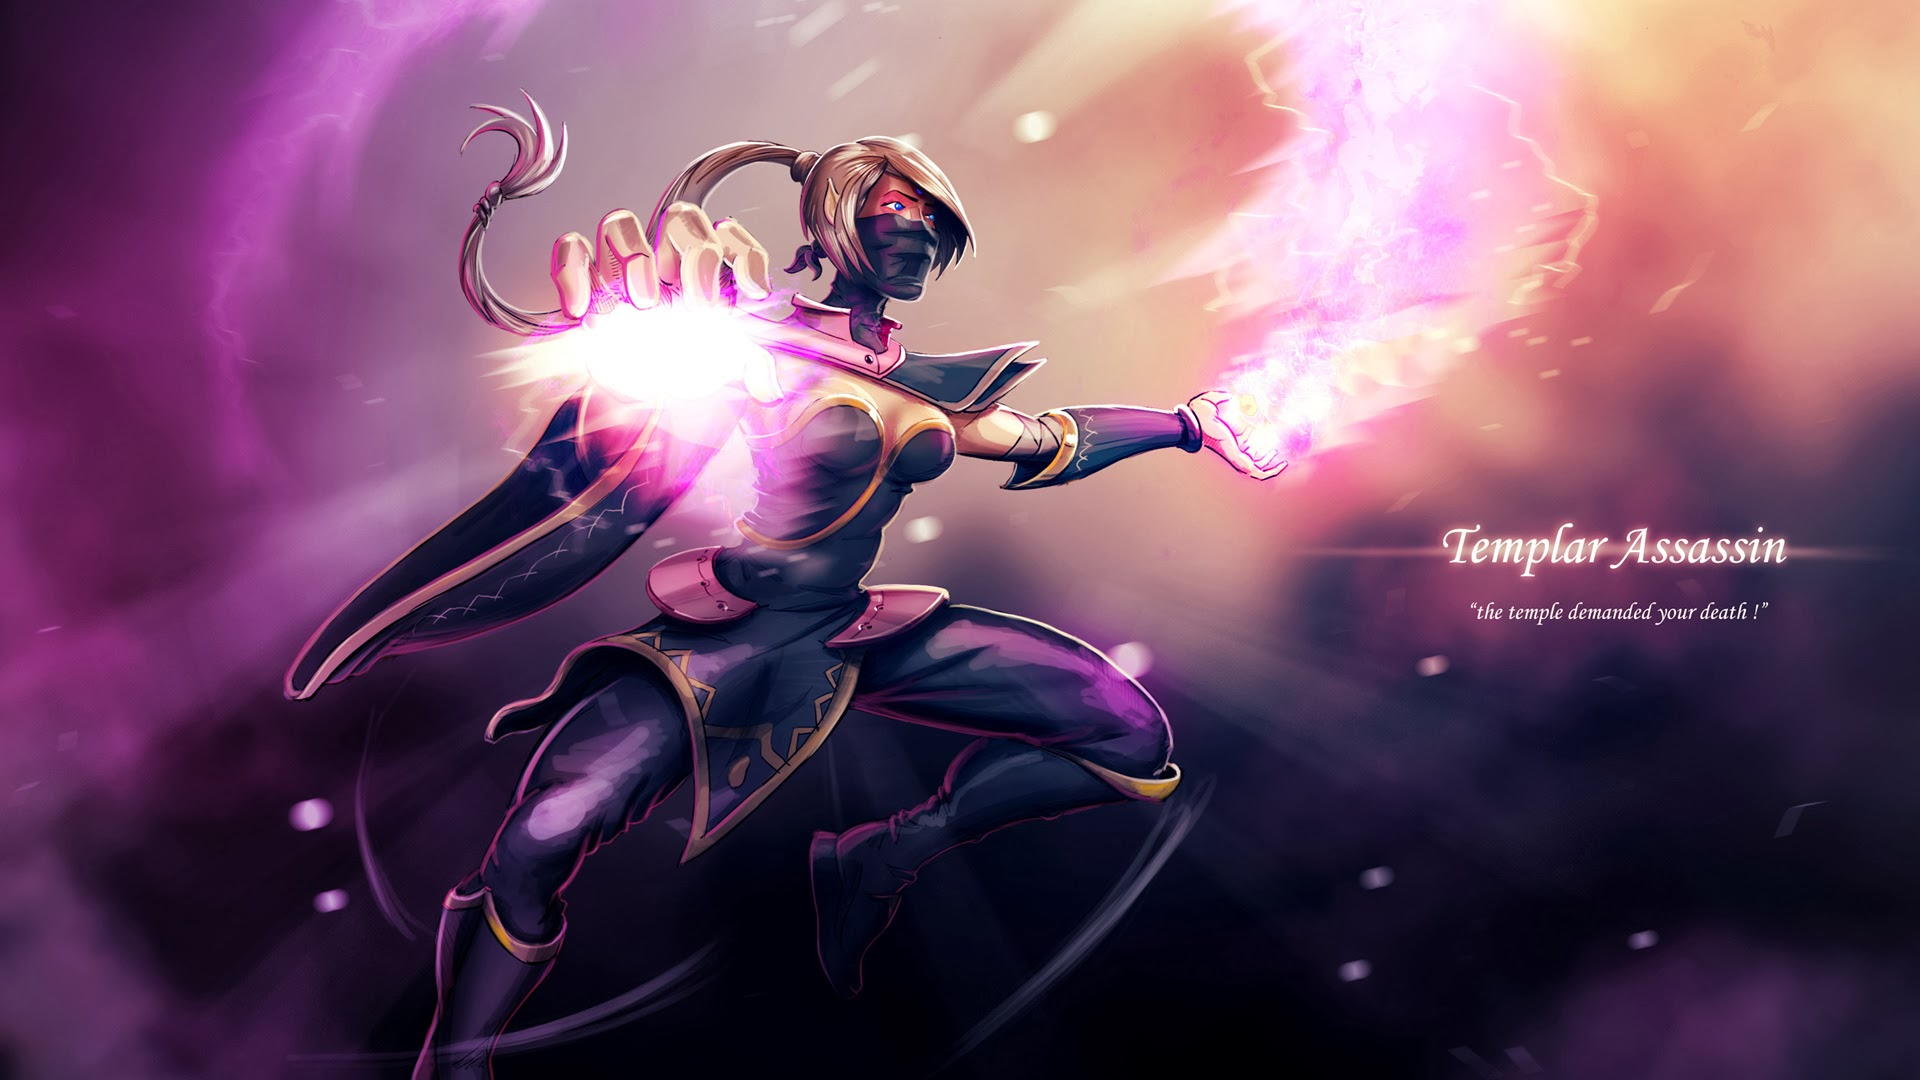 Templar Assassin wallpaper online Dota 2